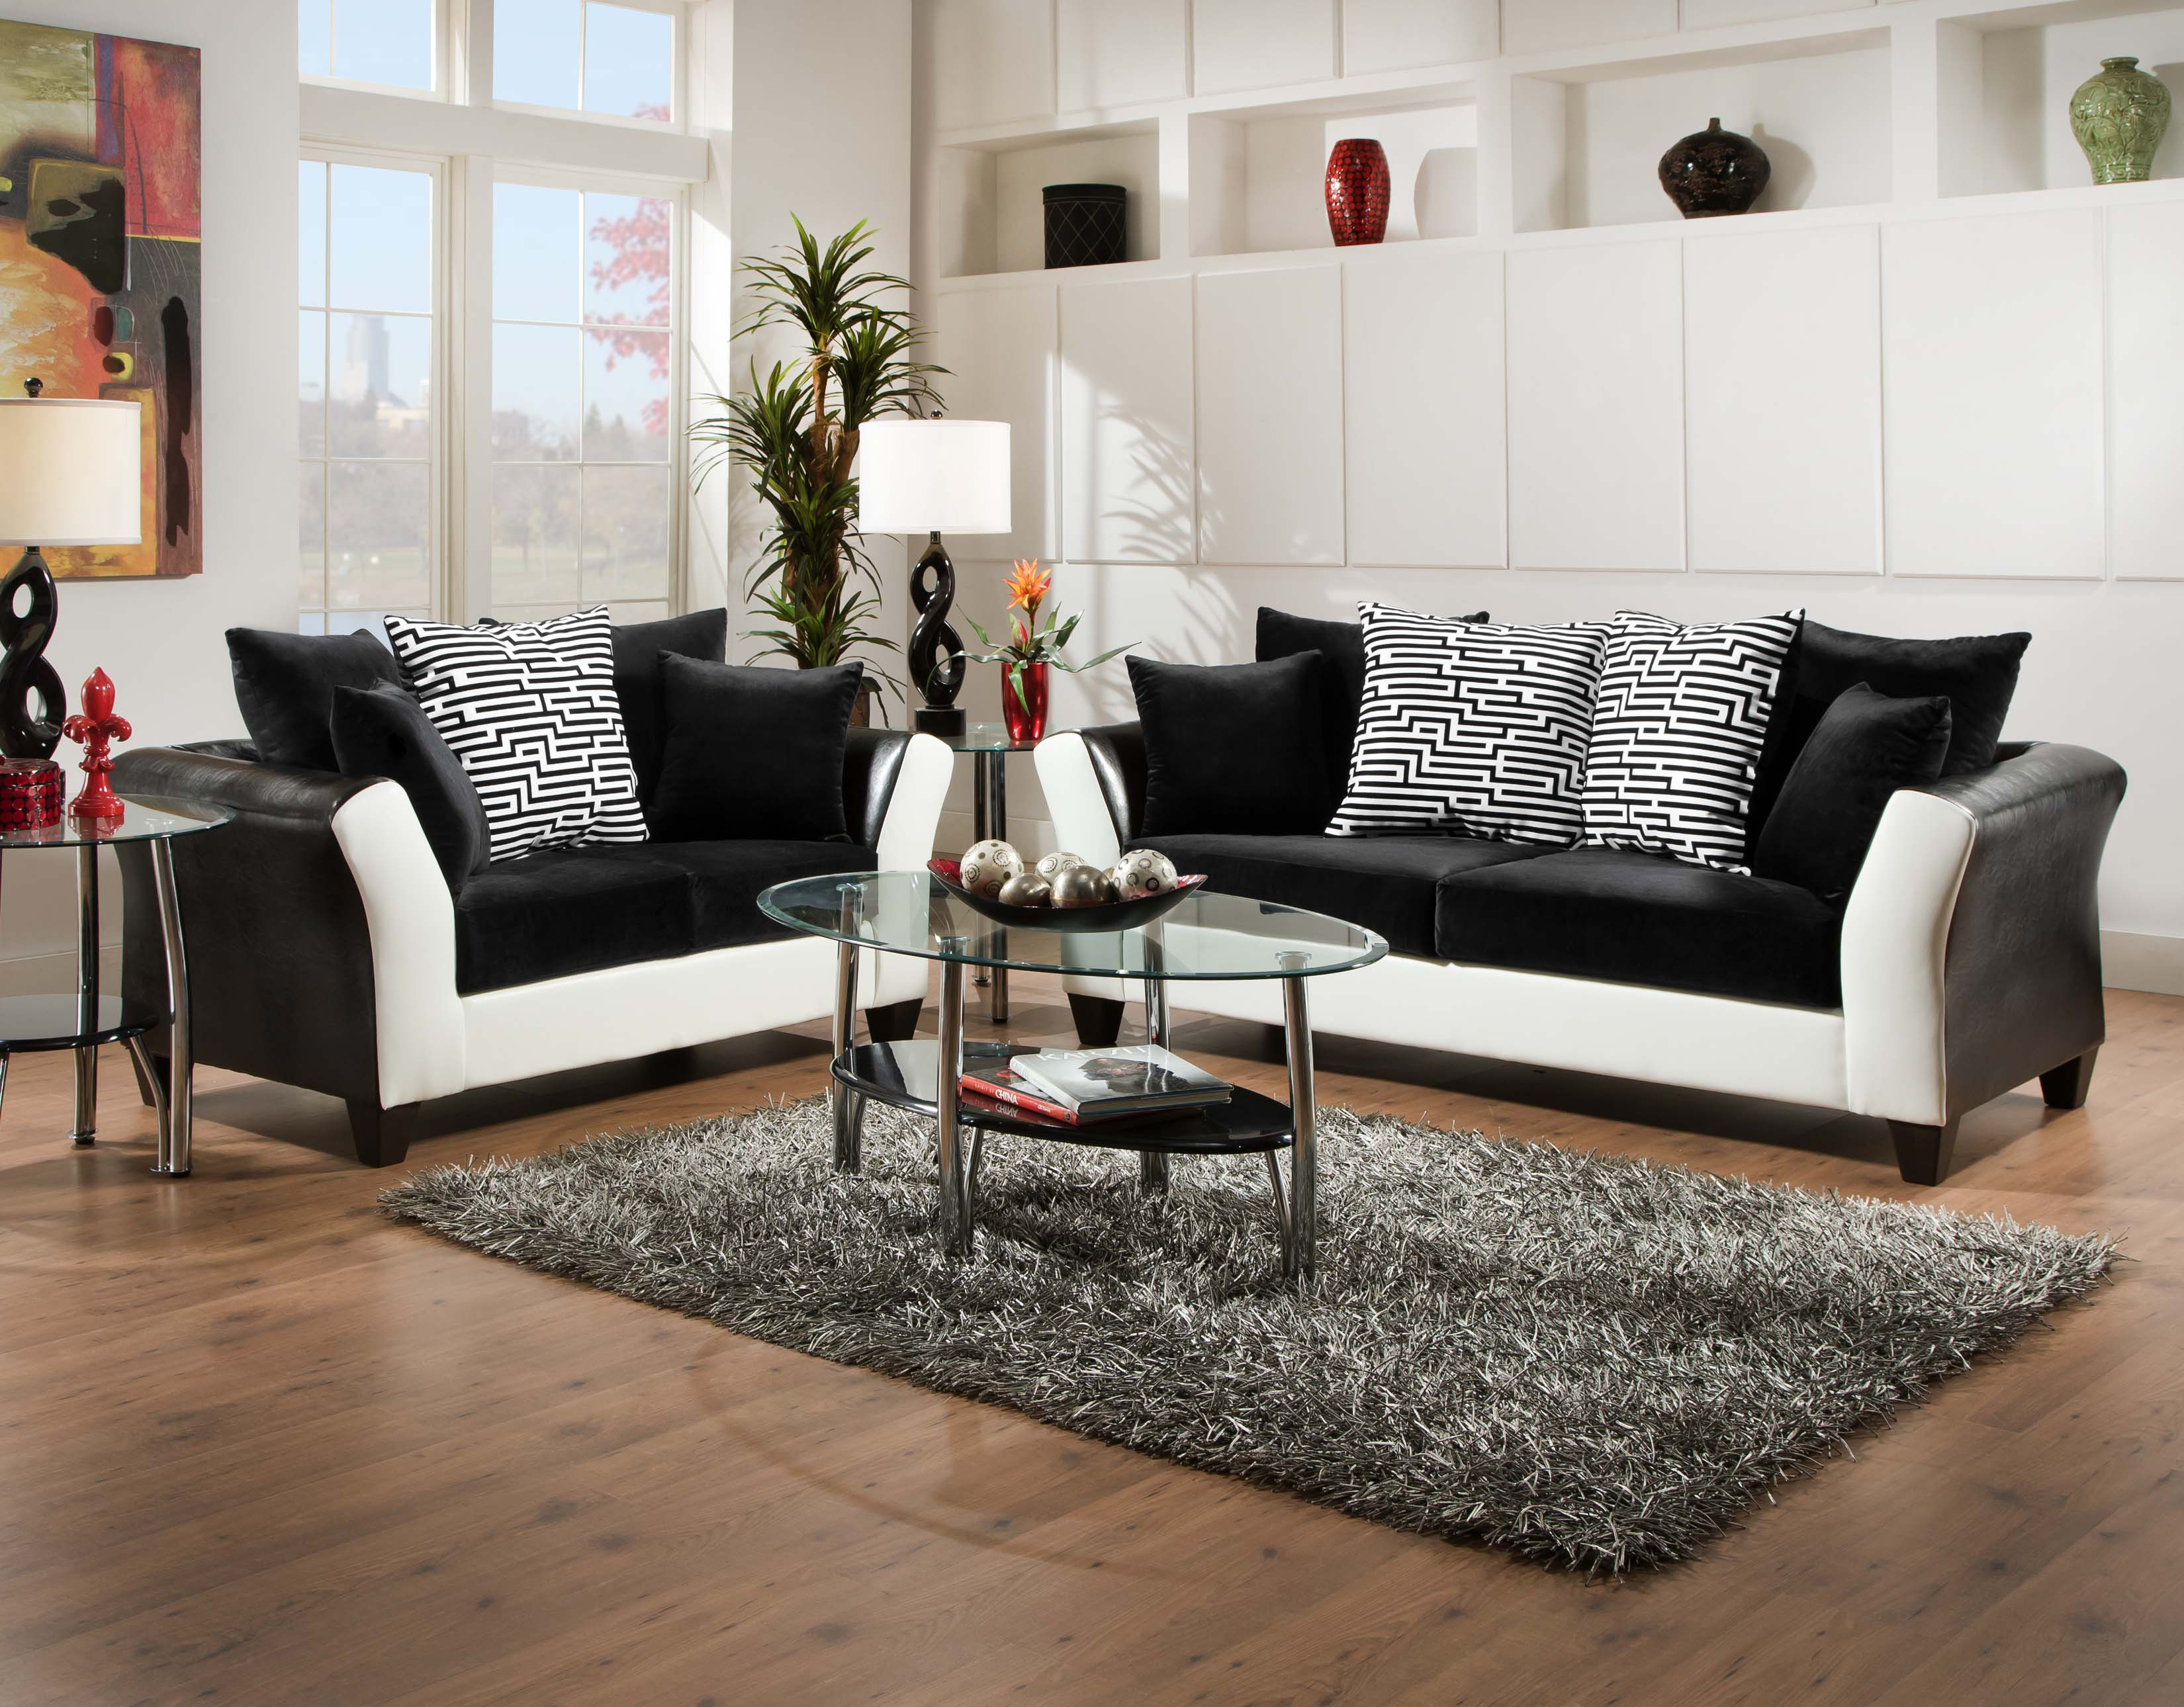 Beautiful Couch And Loveseat Sets With Black White Color Design Gl Top Table Grey